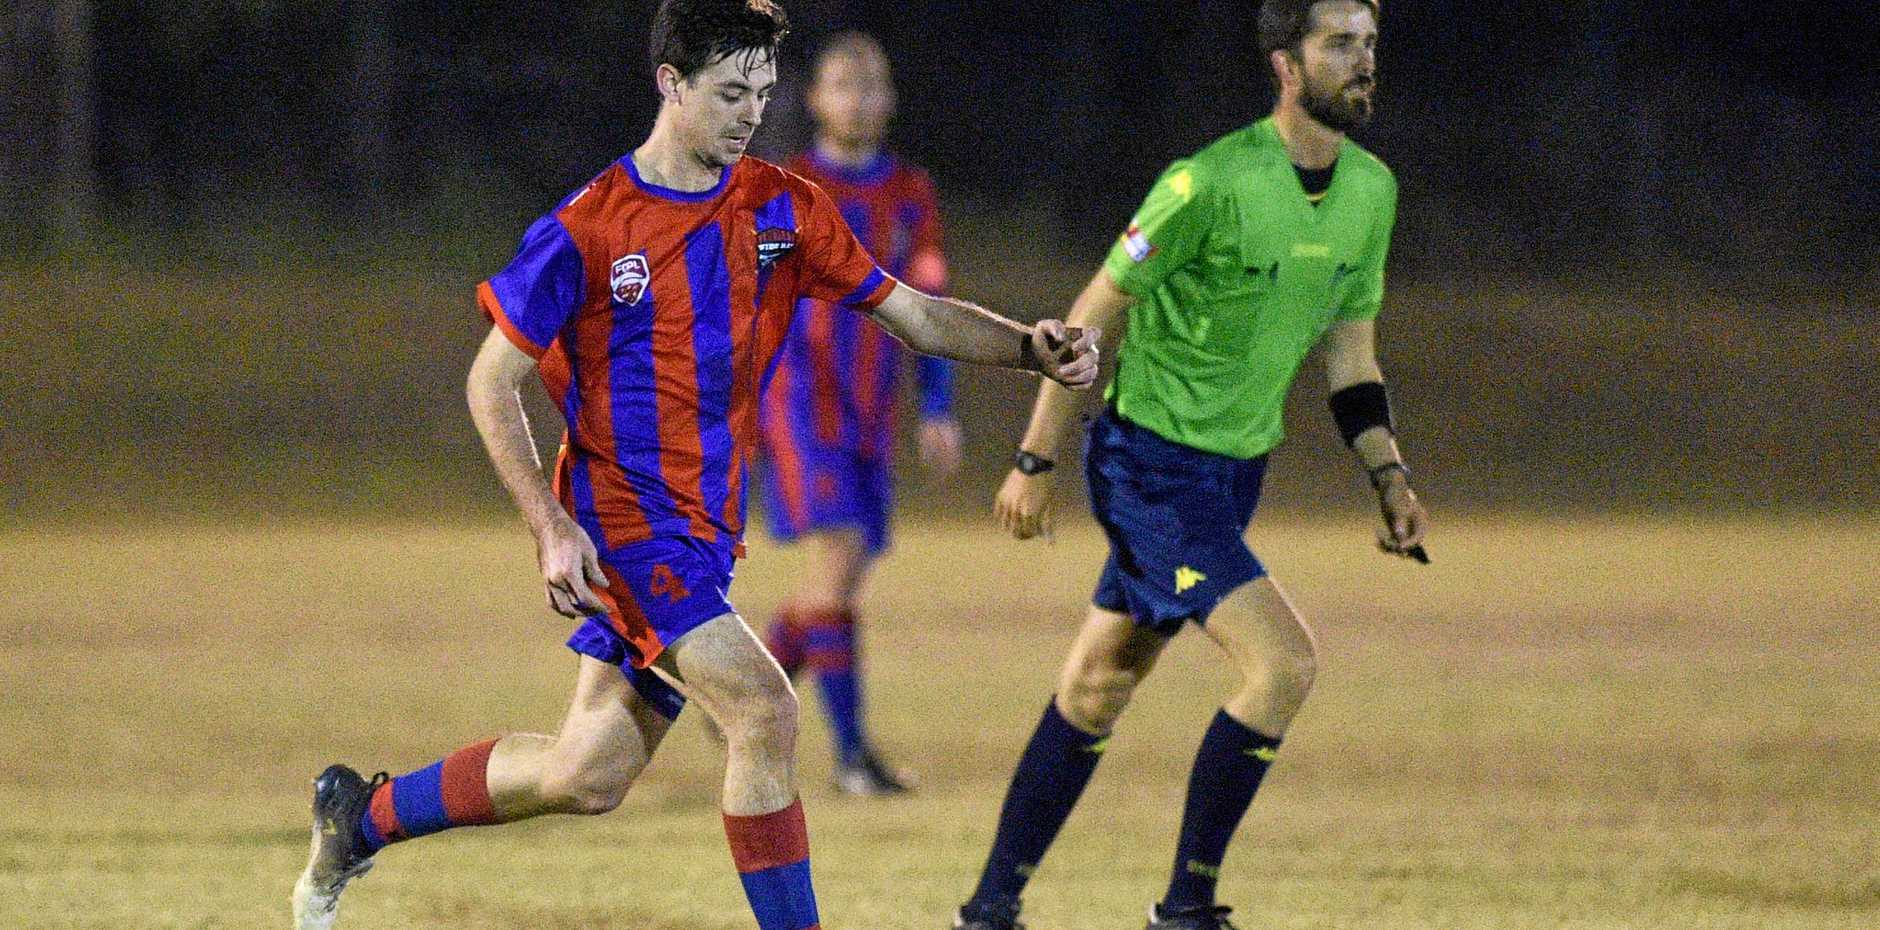 FIGHTING SPIRIT: Wide Bay Buccaneers' Shaun Mitchell takes up the ball against Capalaba Bulldogs.